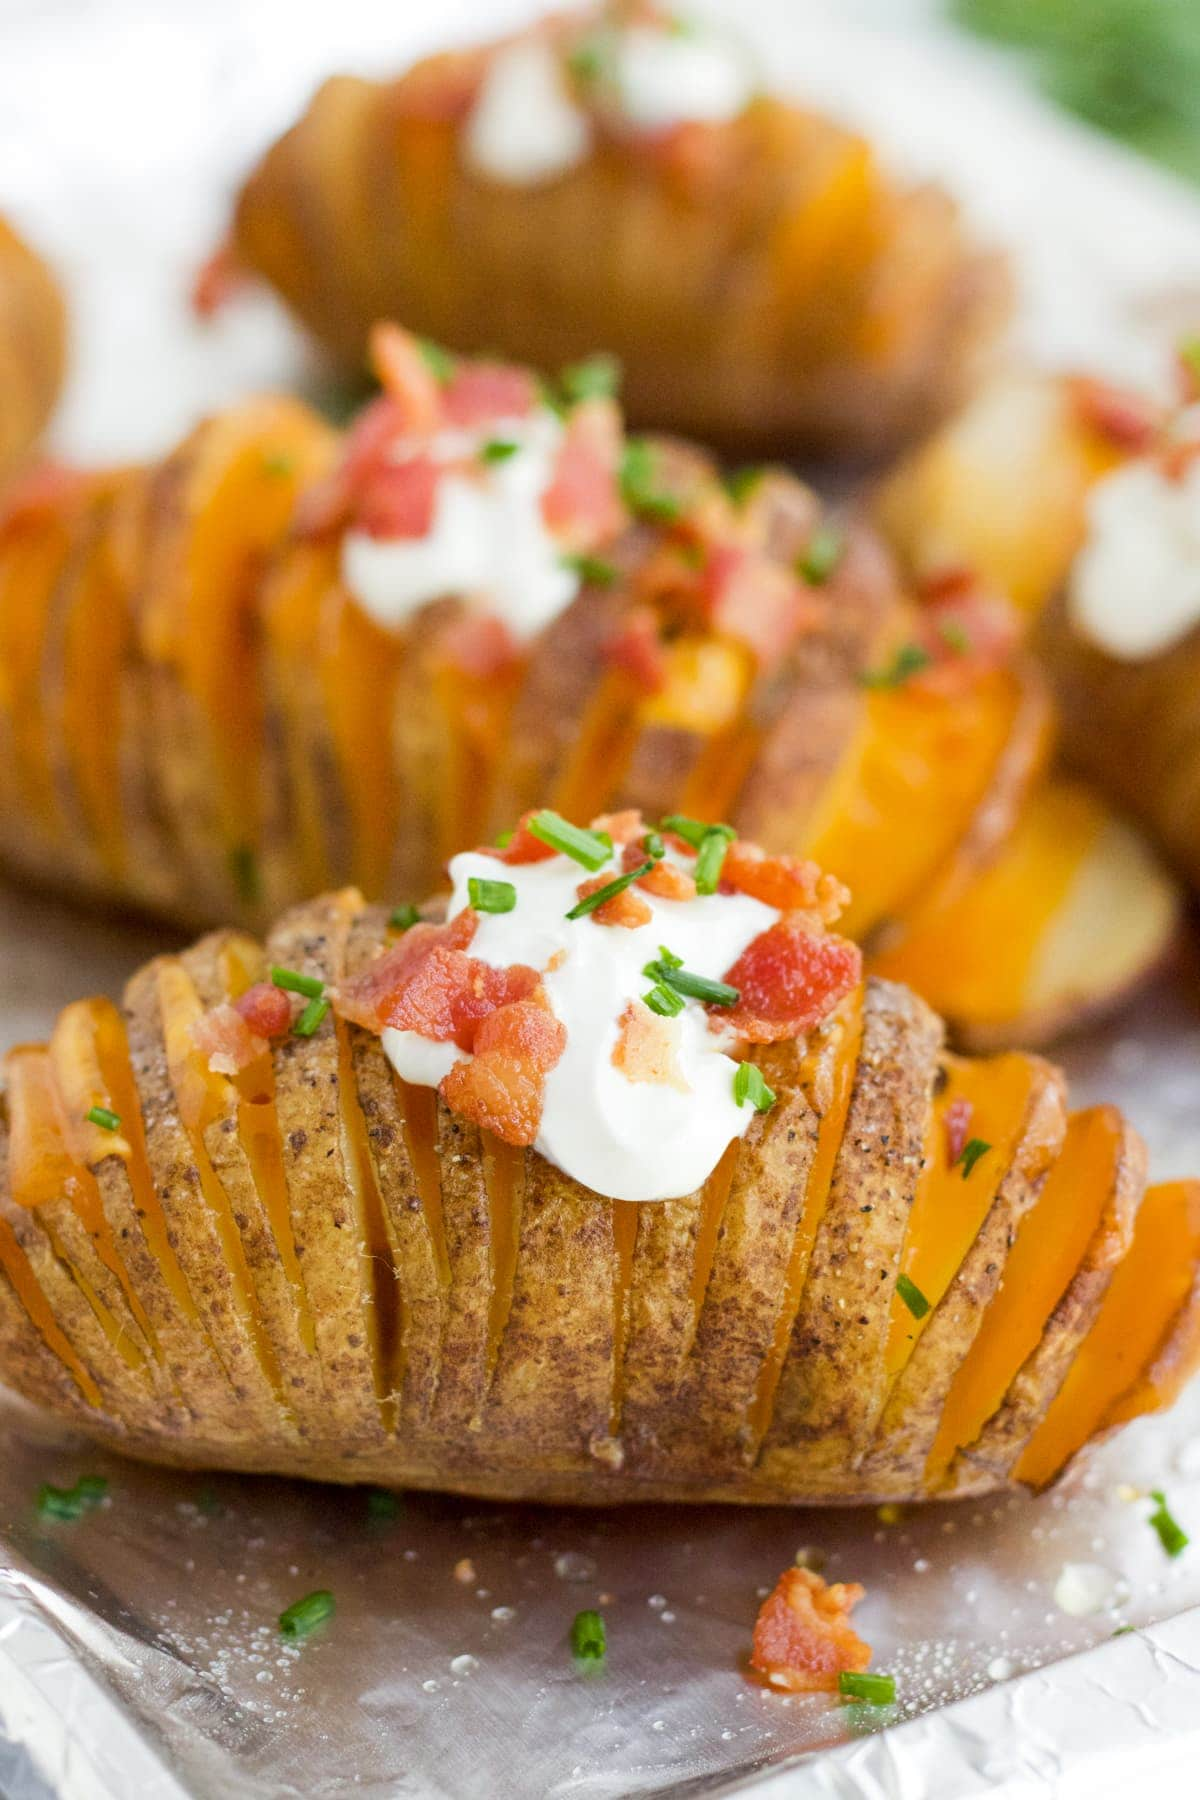 Hasselback potatoes on a baking sheet with fully loaded toppings